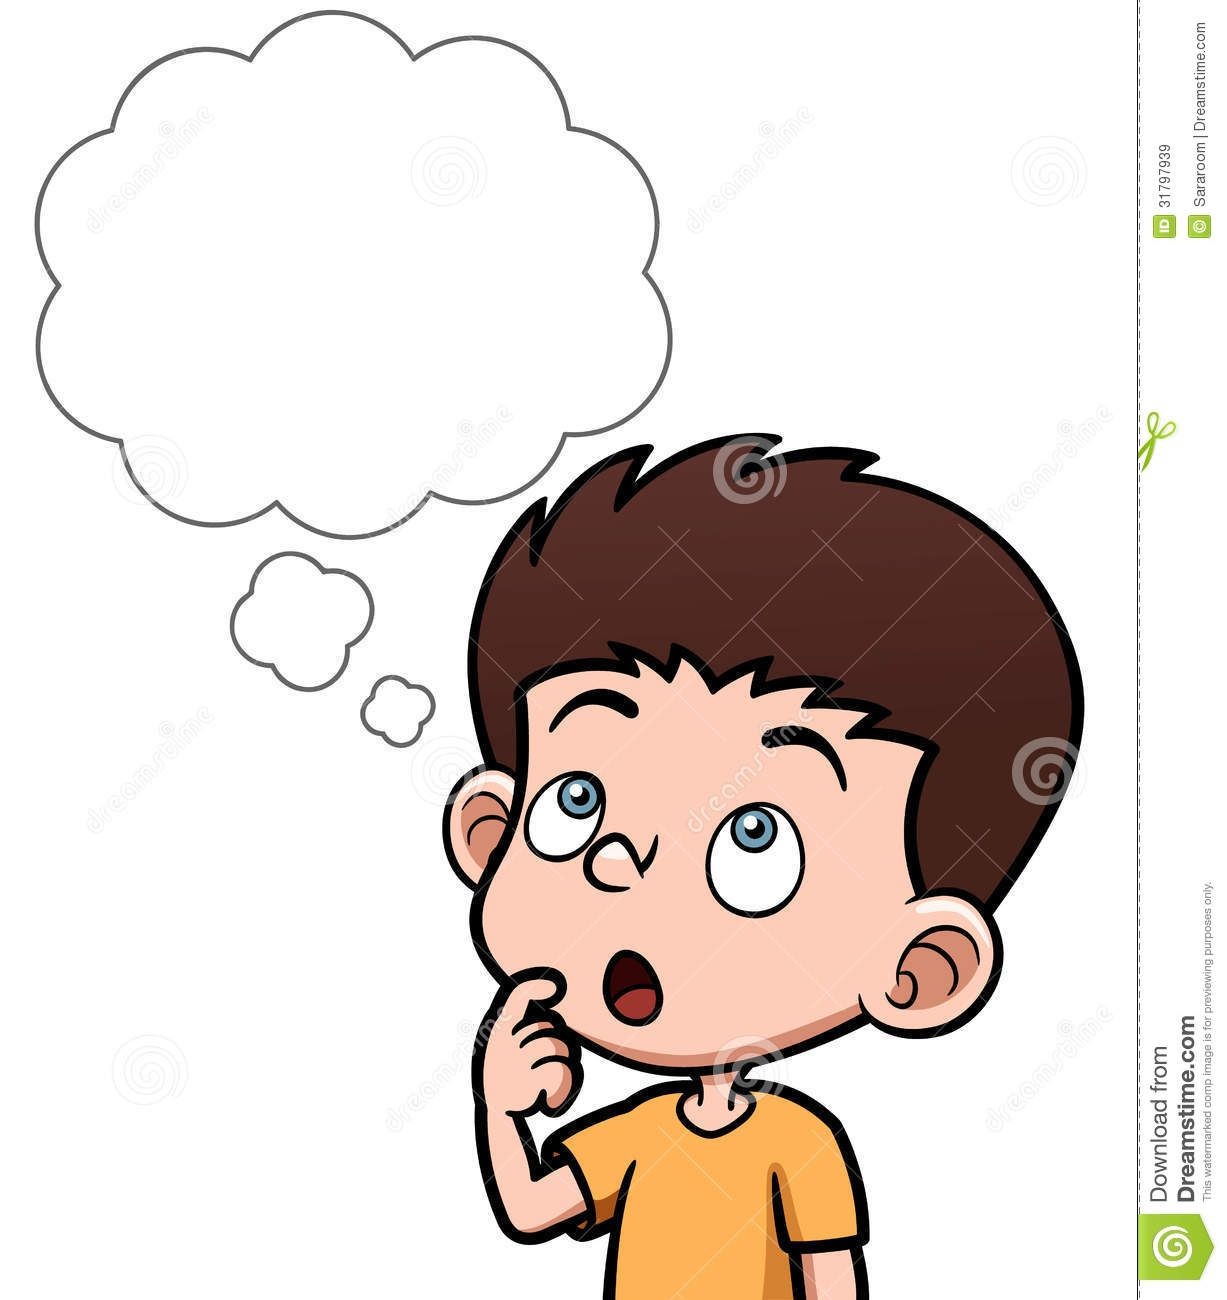 Person Thinking With Thought Bubble Cartoon Boy Thinking White Bubble Vector Illustration 31797939 Jpg 1227 Cartoon Boy Clip Art Library Art Drawings For Kids